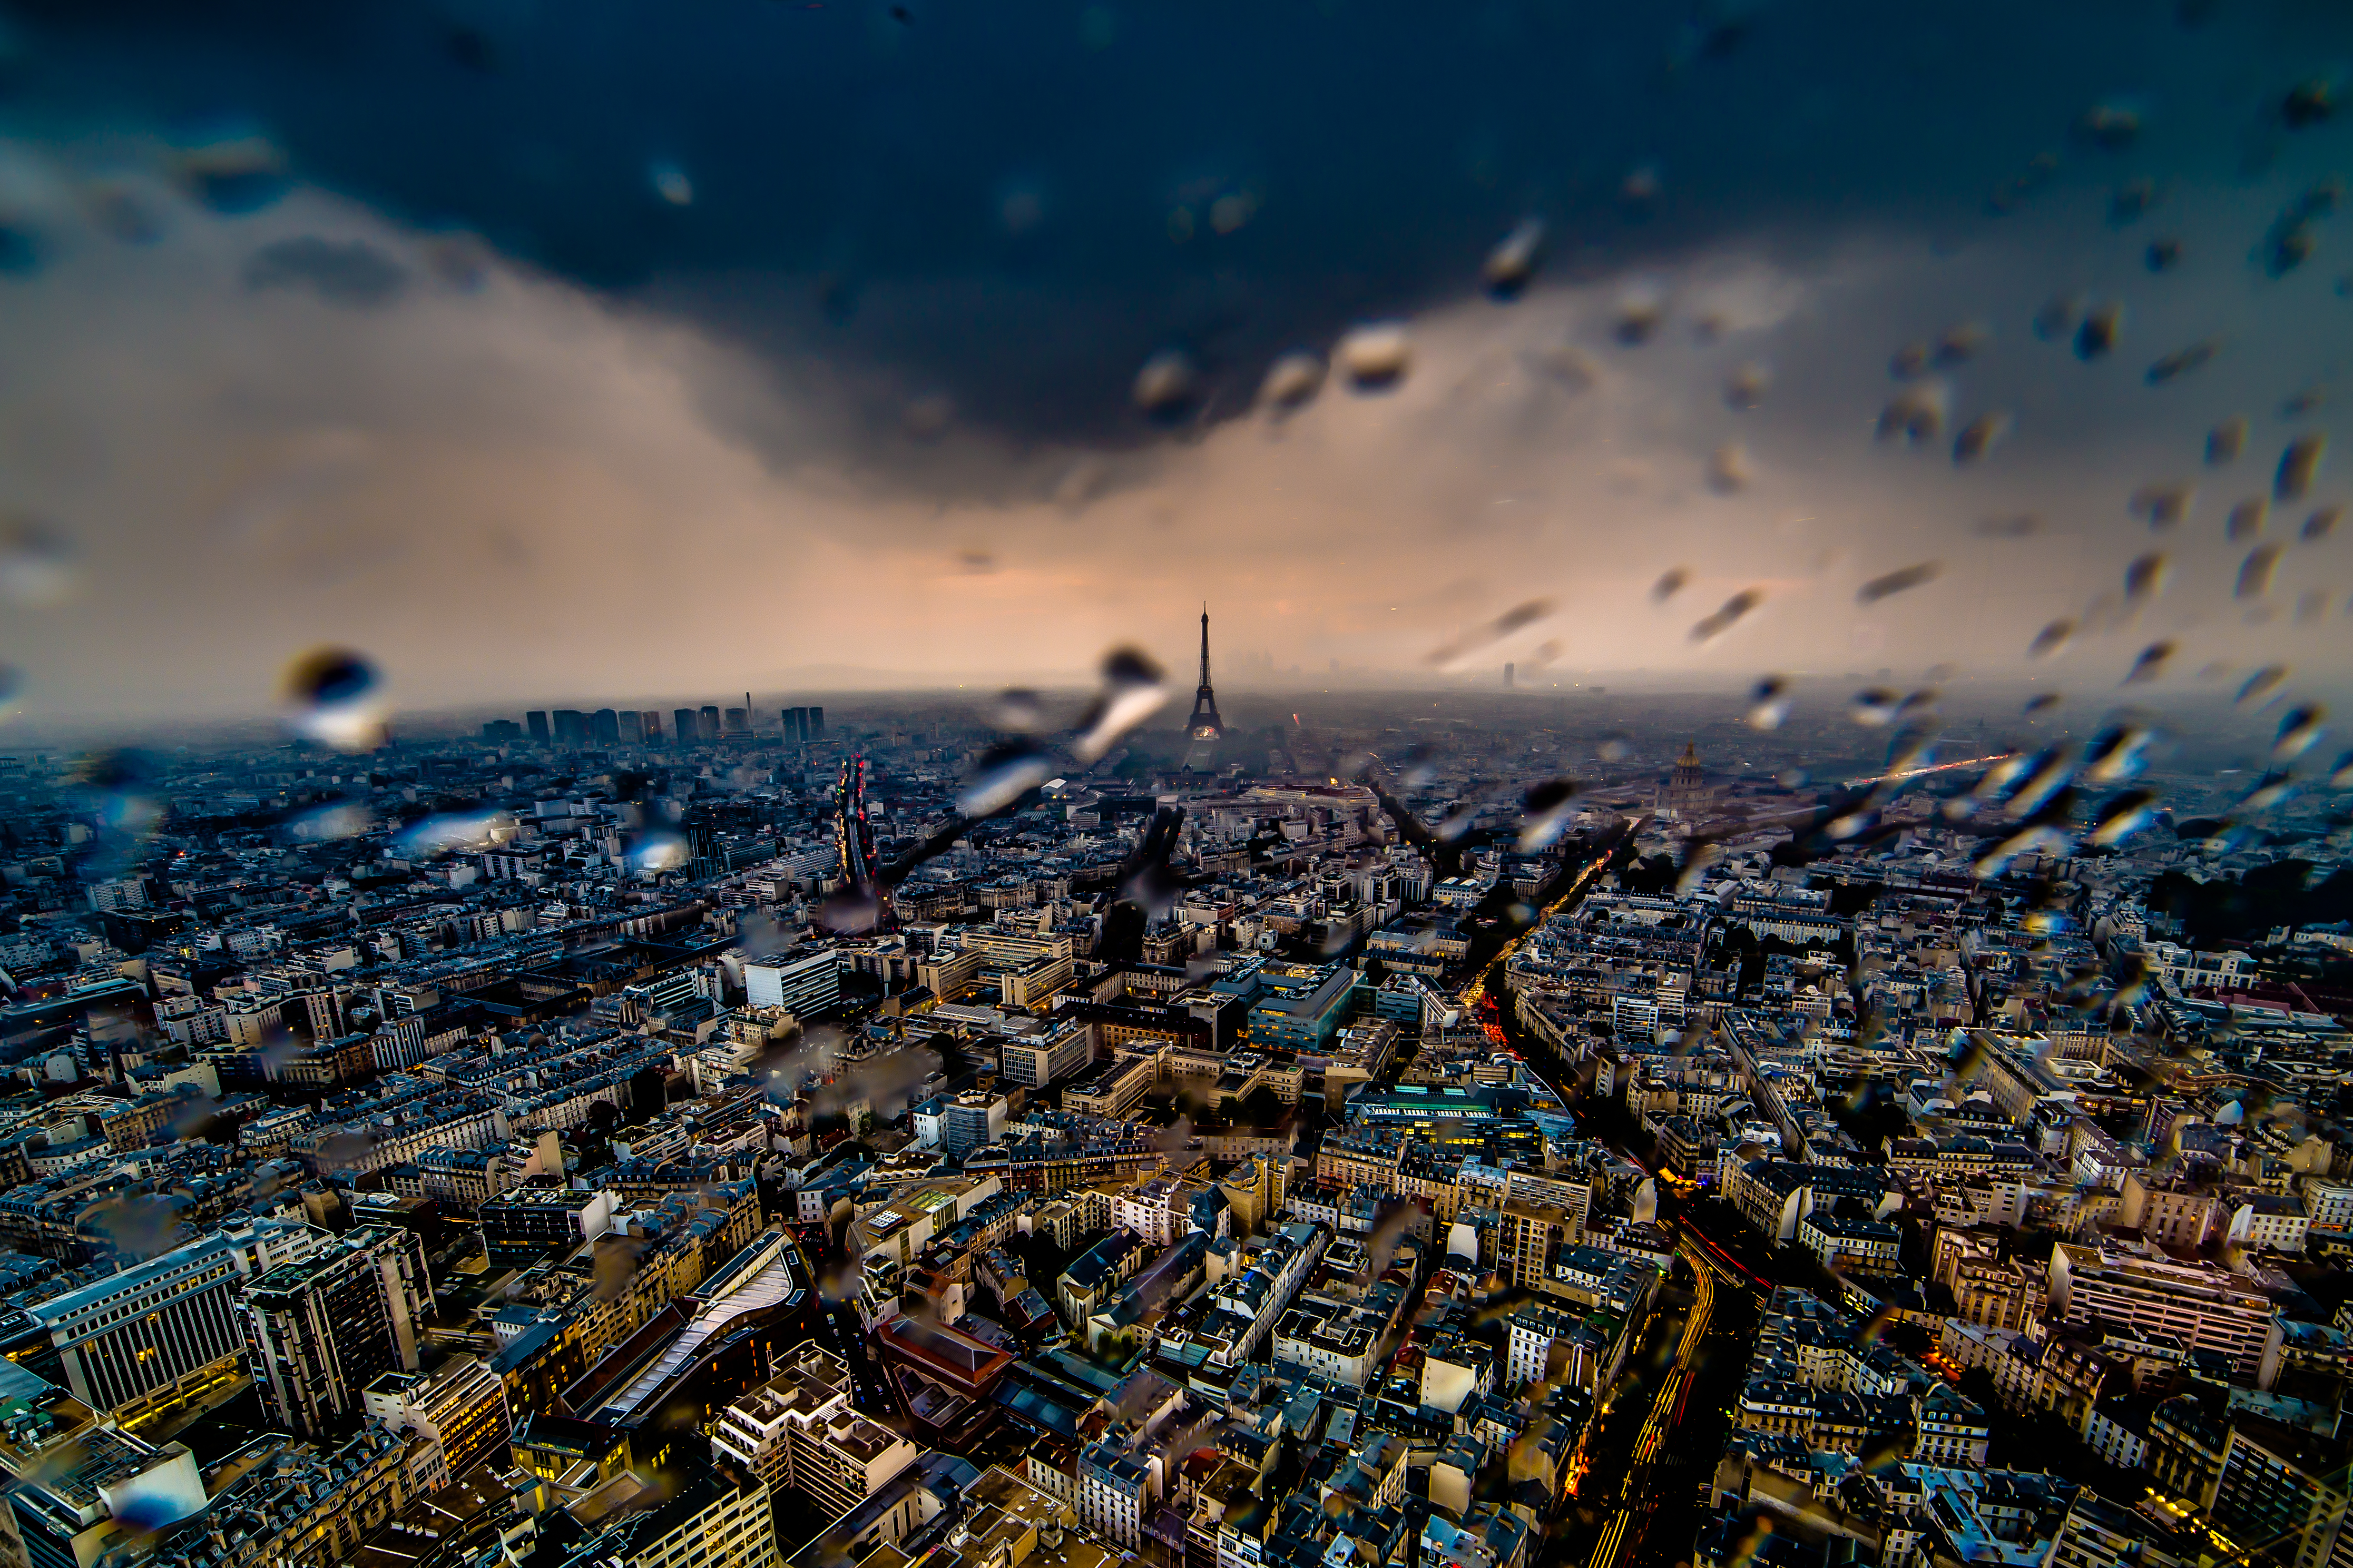 Best places to take pictures in Paris - Rainy Paris Afternoon. Taken from the Tour Montparnasee with a Canon 6D and Rokinon 14mm f/2.8